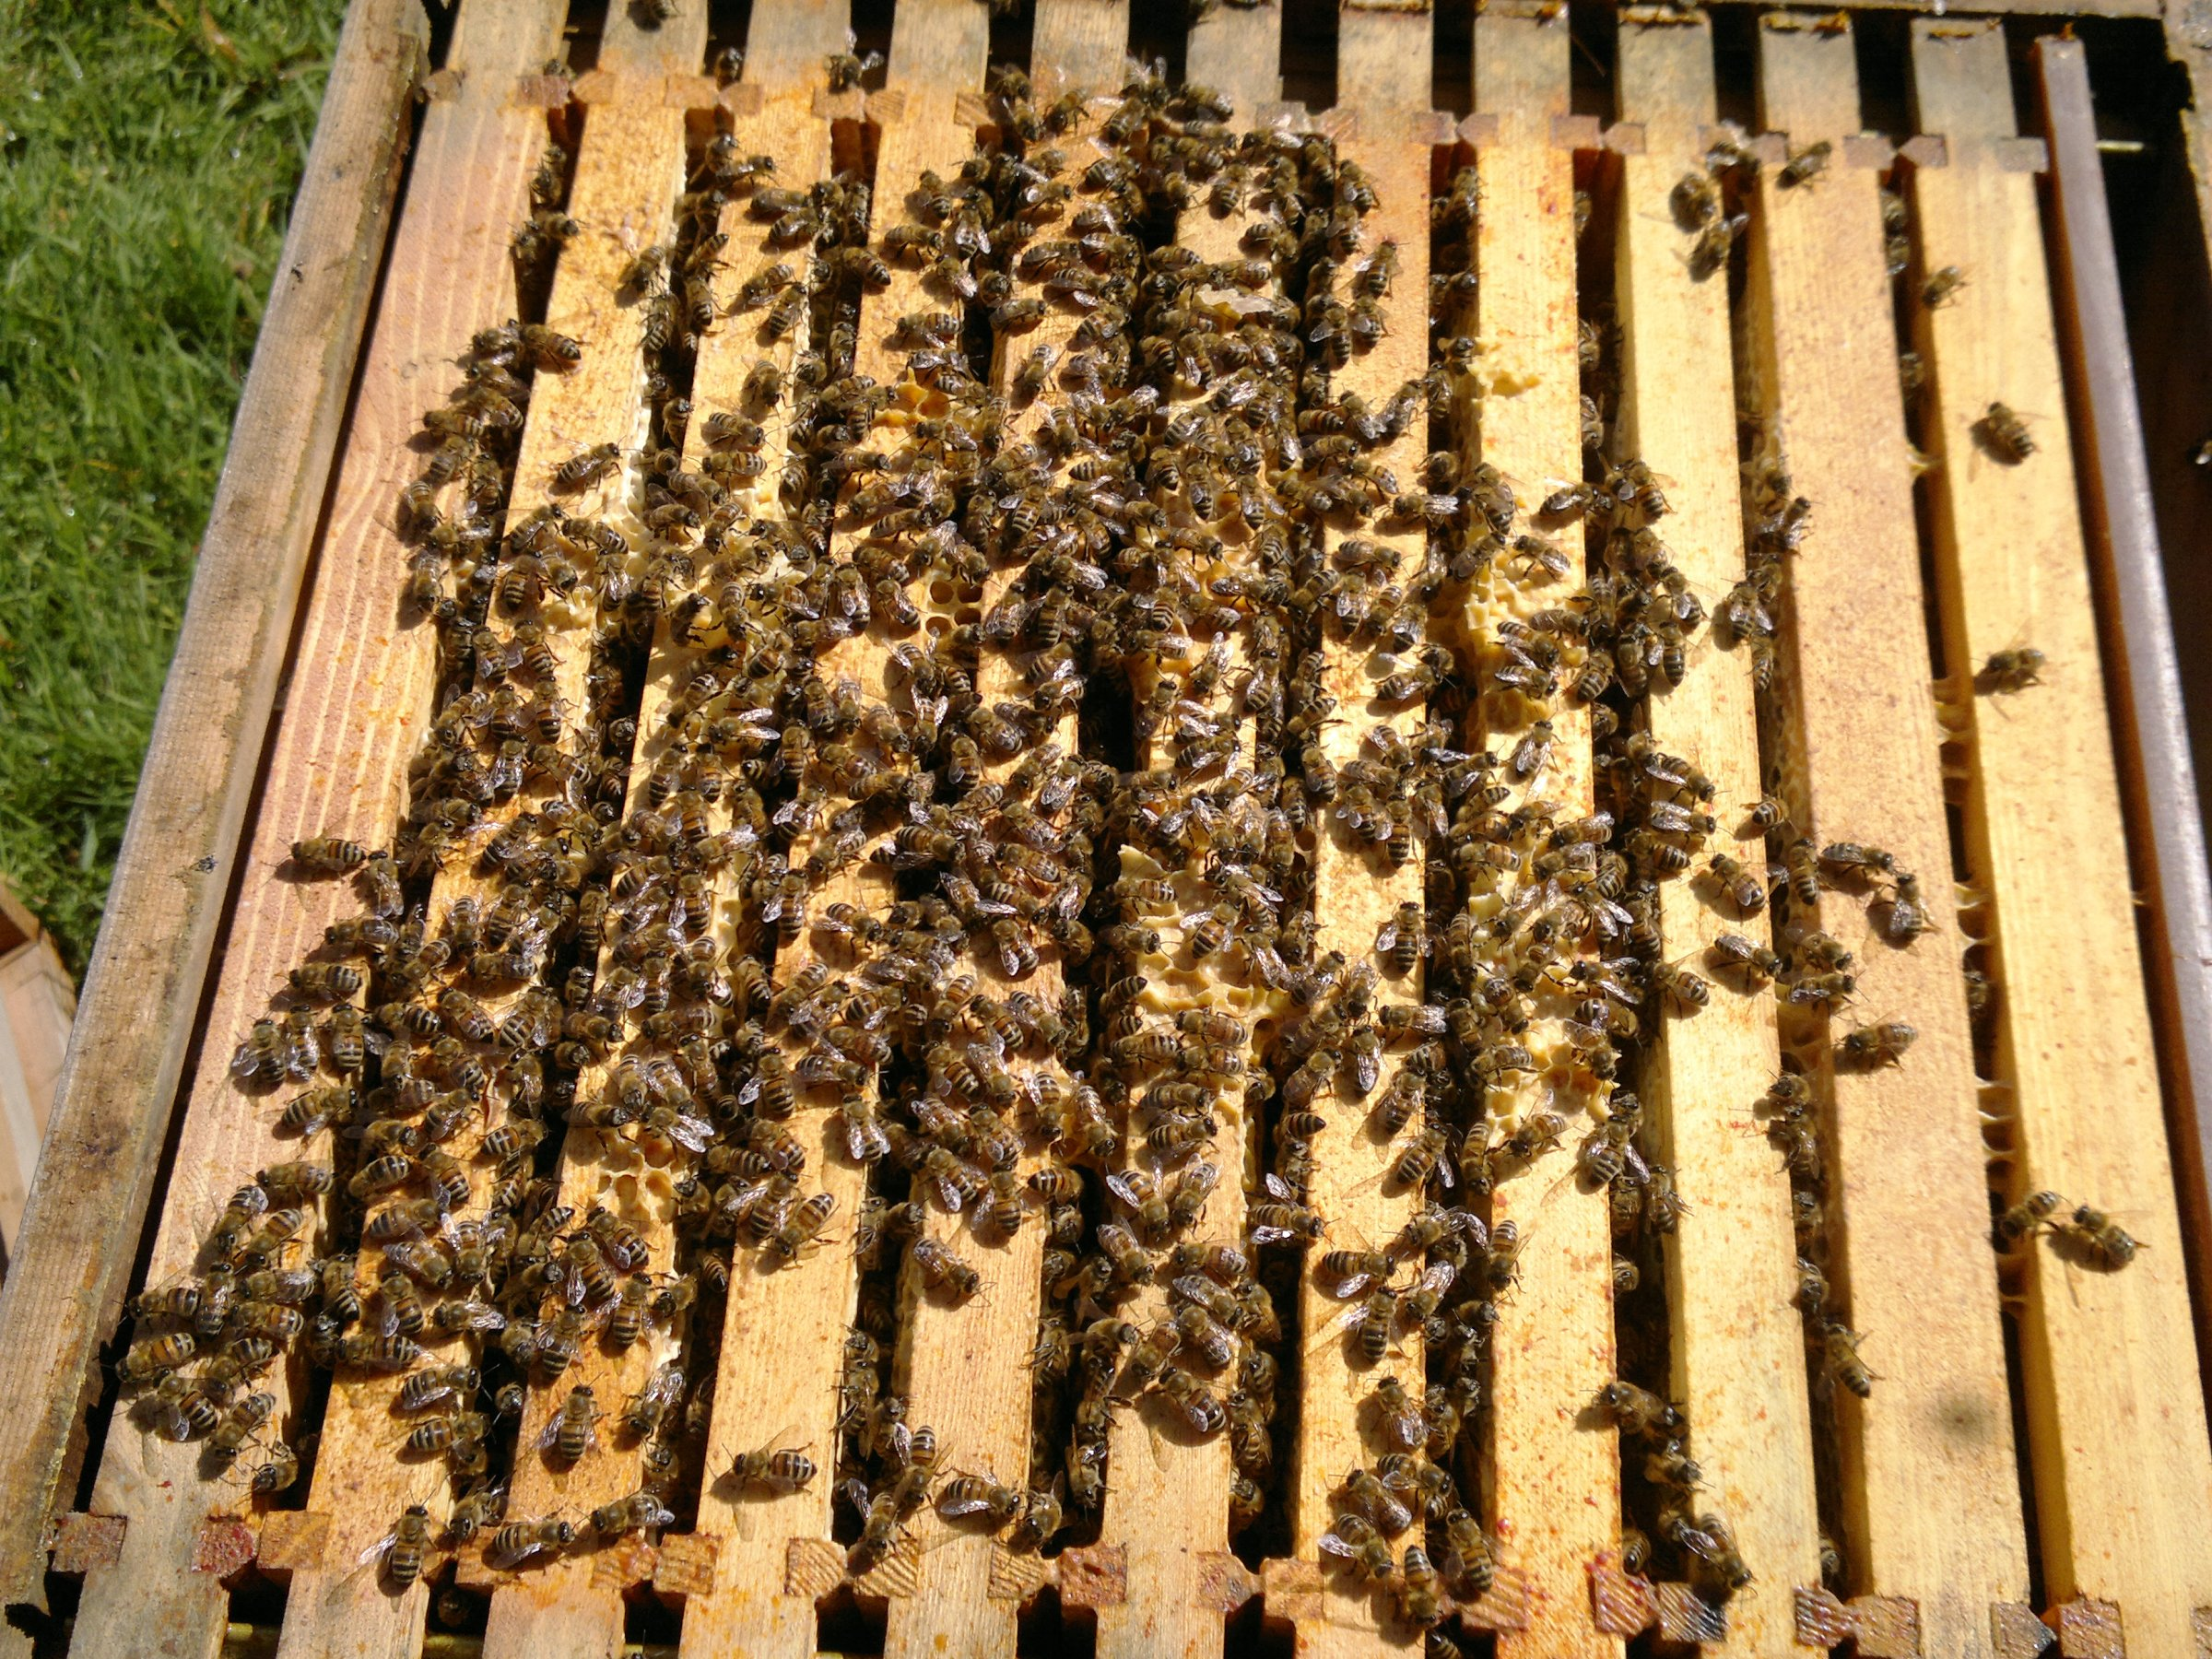 Lots of bees in the top brood box - a good sign